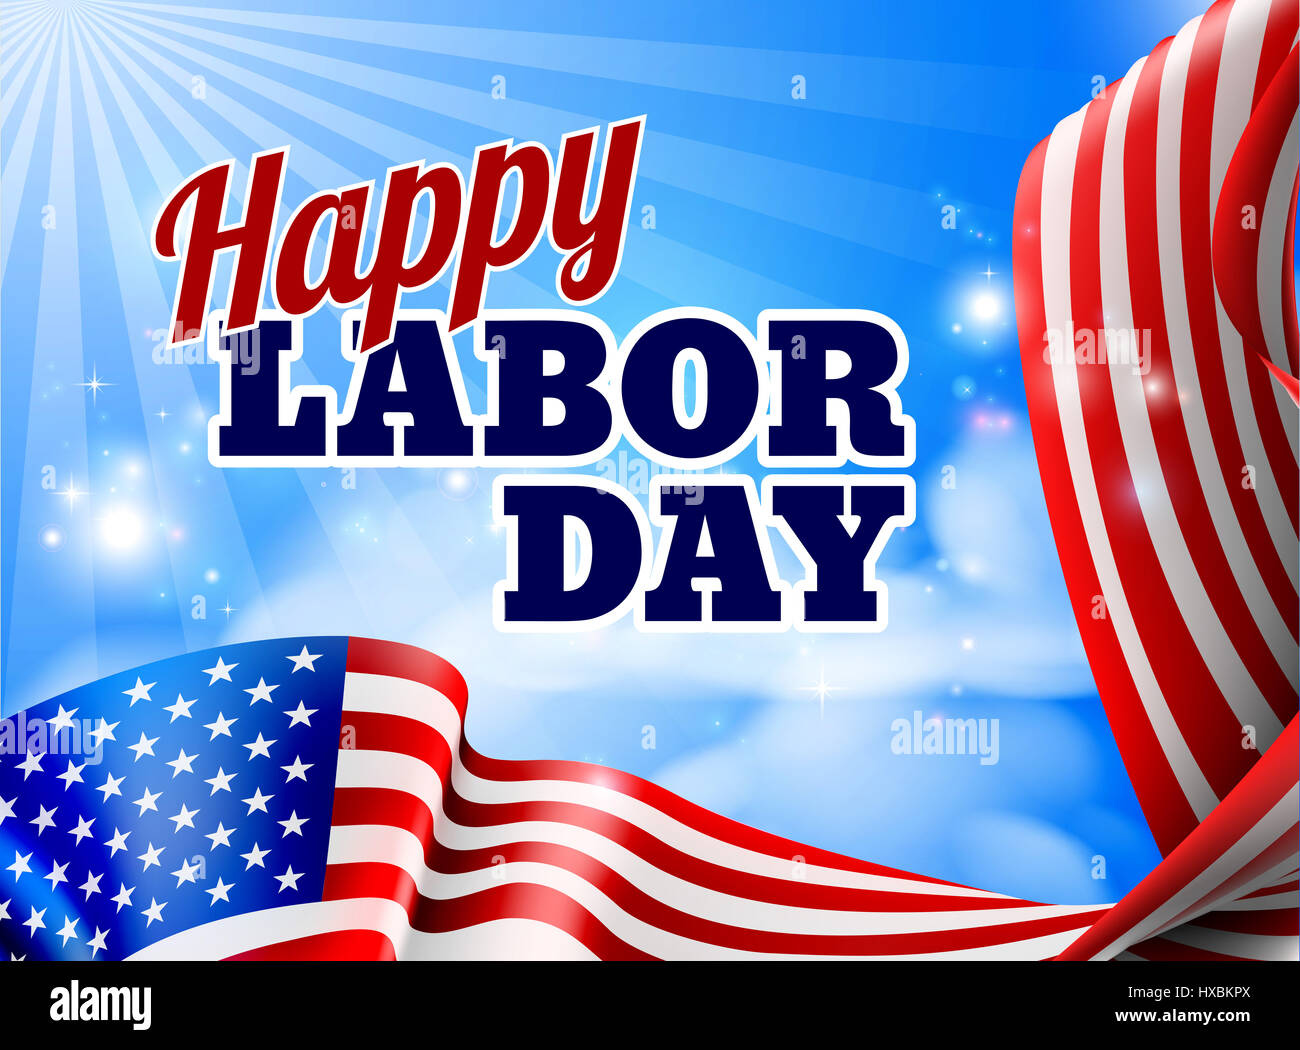 a happy labor day design with an american flag banner border and sky